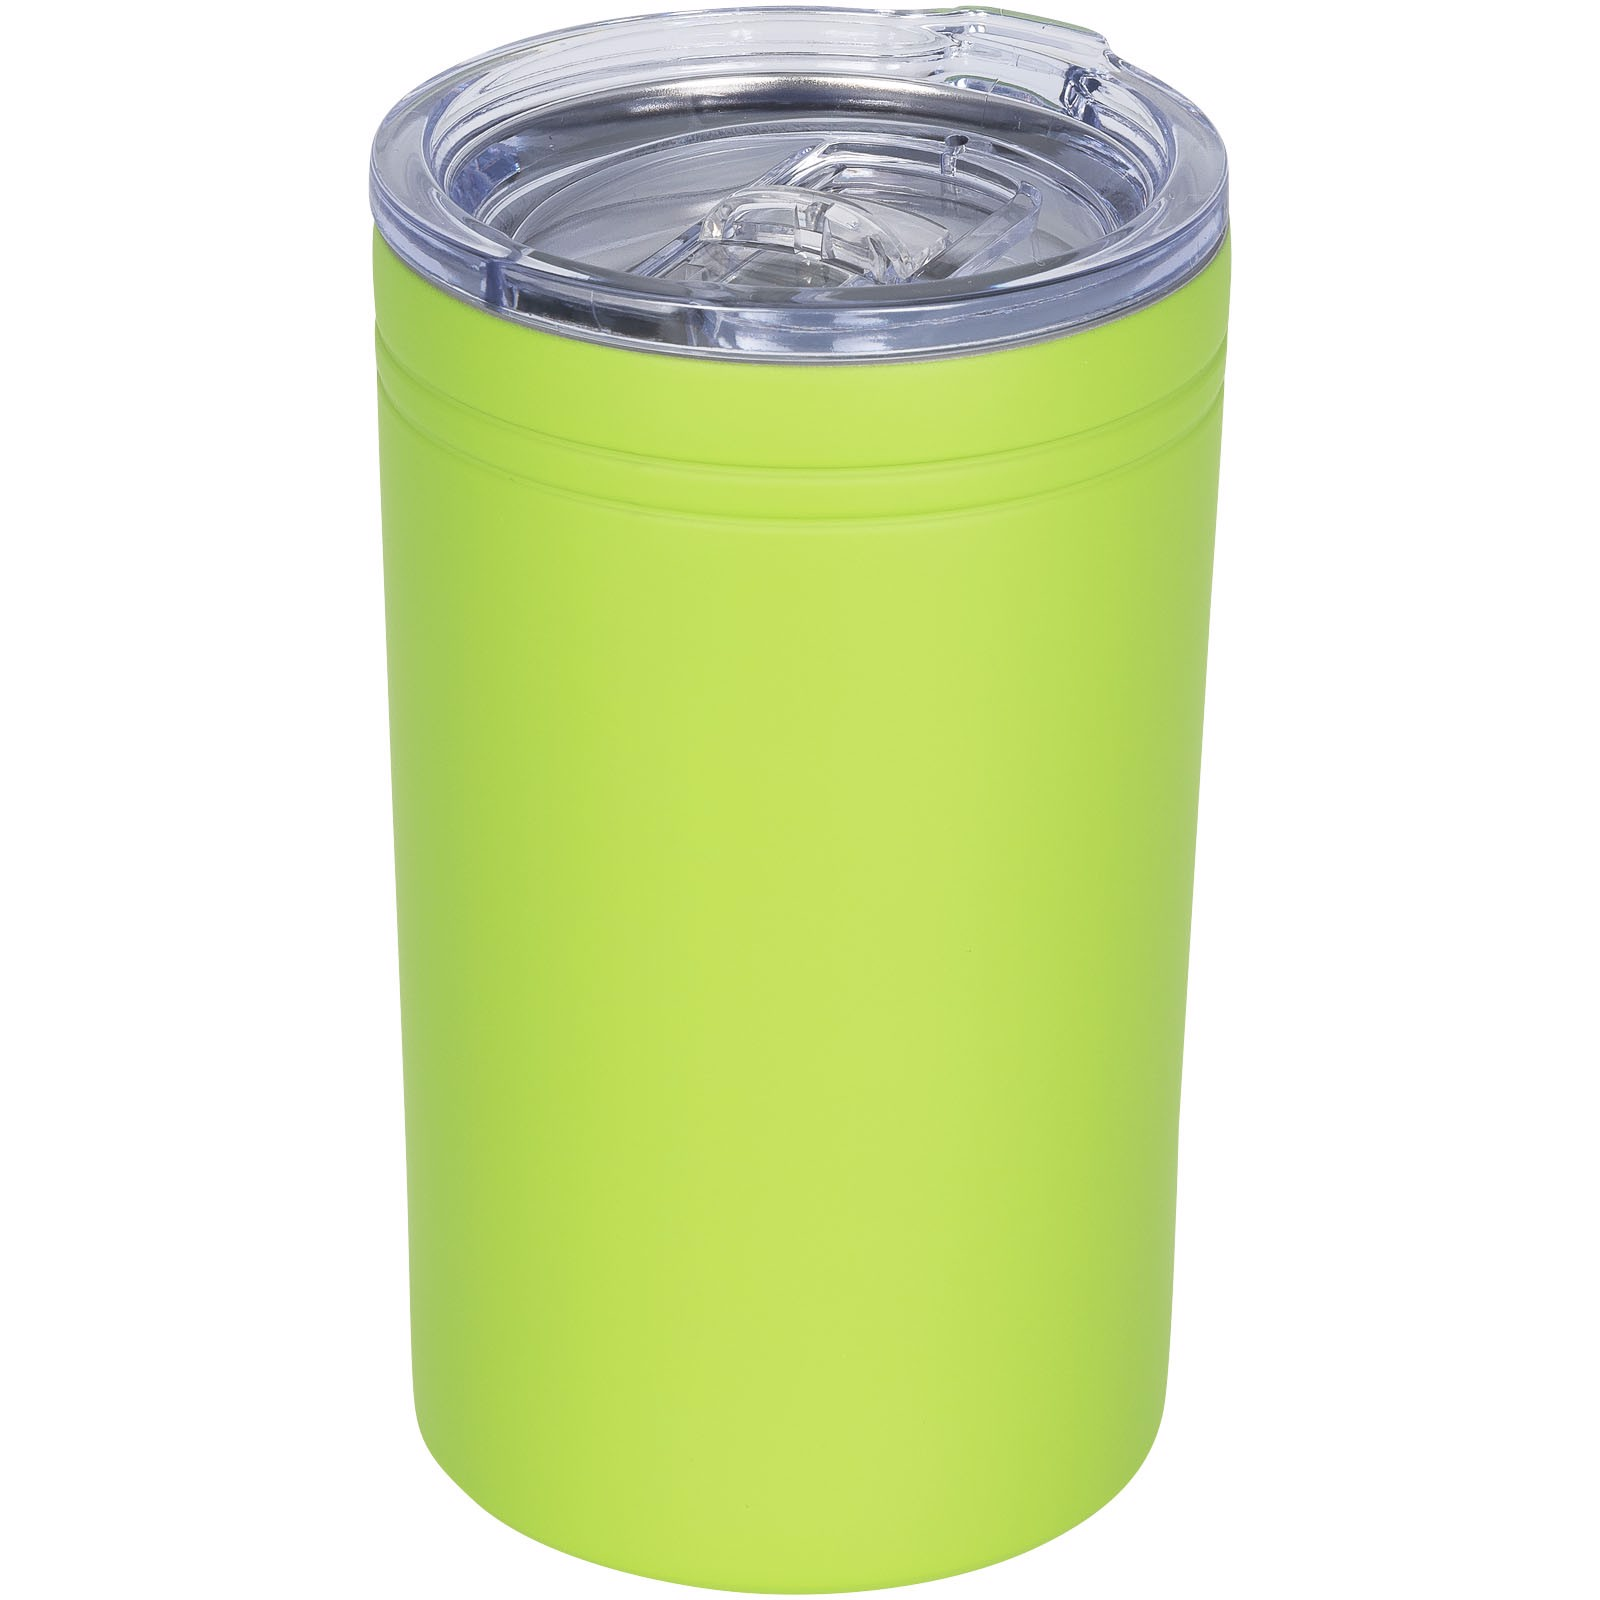 Pika 330 ml vacuum insulated tumbler and insulator - Lime